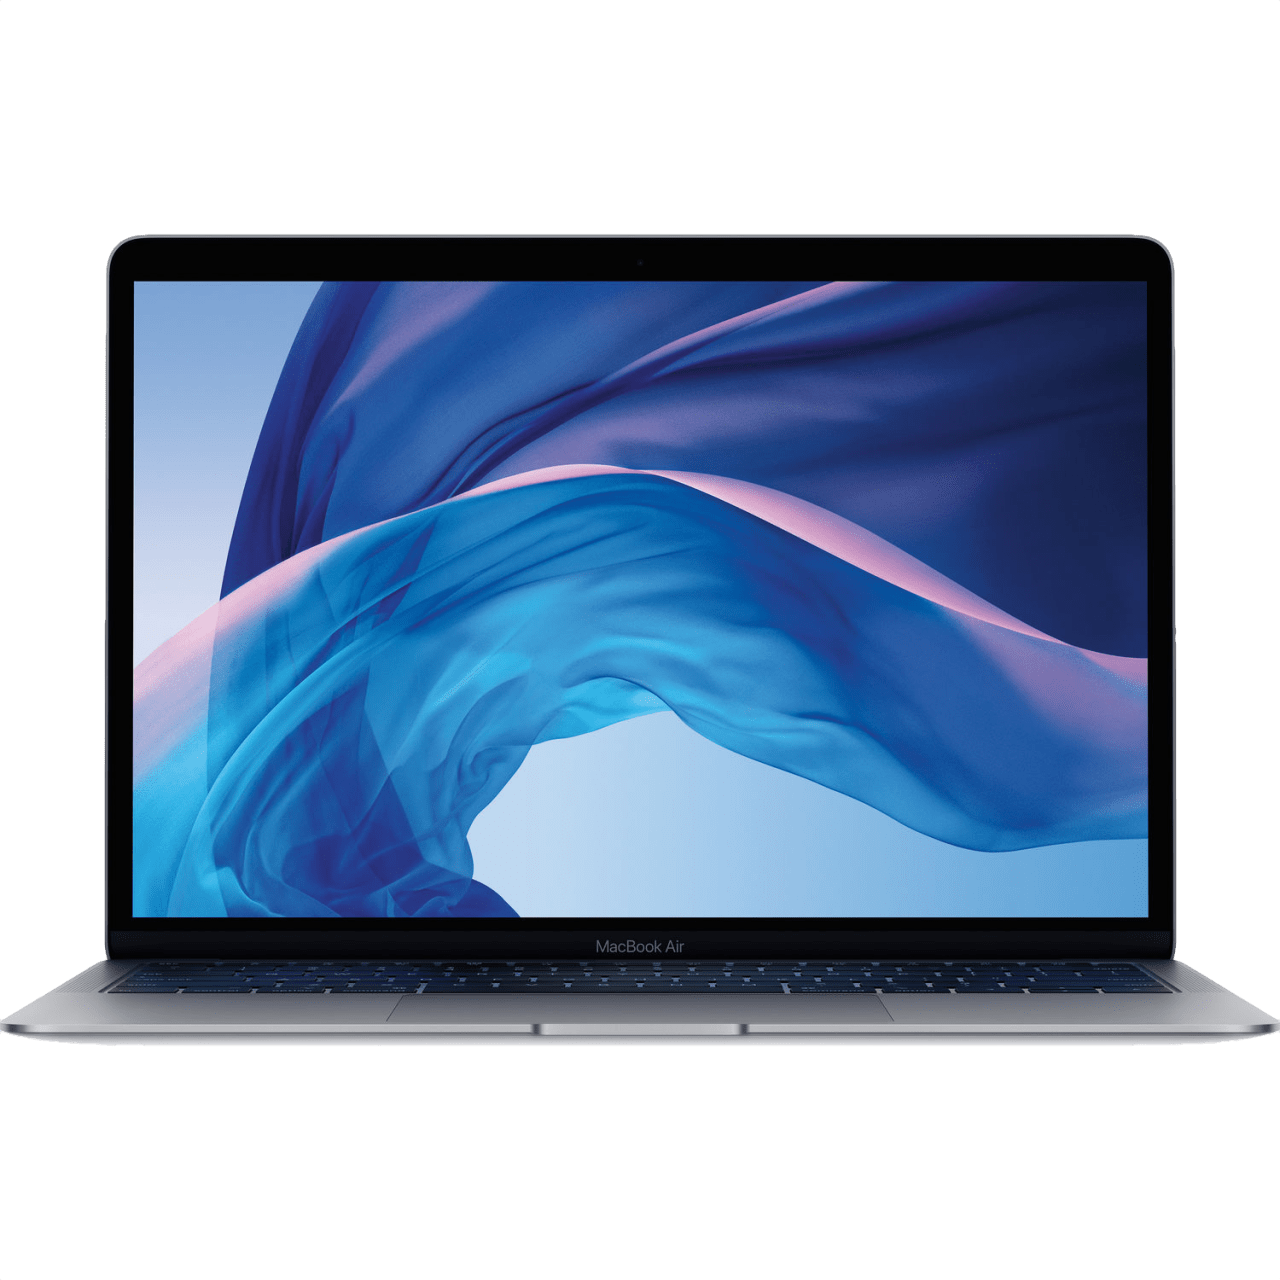 Space Grey Apple MacBook Air (Early 2020) Laptop - Intel® Core™ i5-1030NG7 - 8GB - 512GB SSD - Intel® Iris Plus Graphics.1